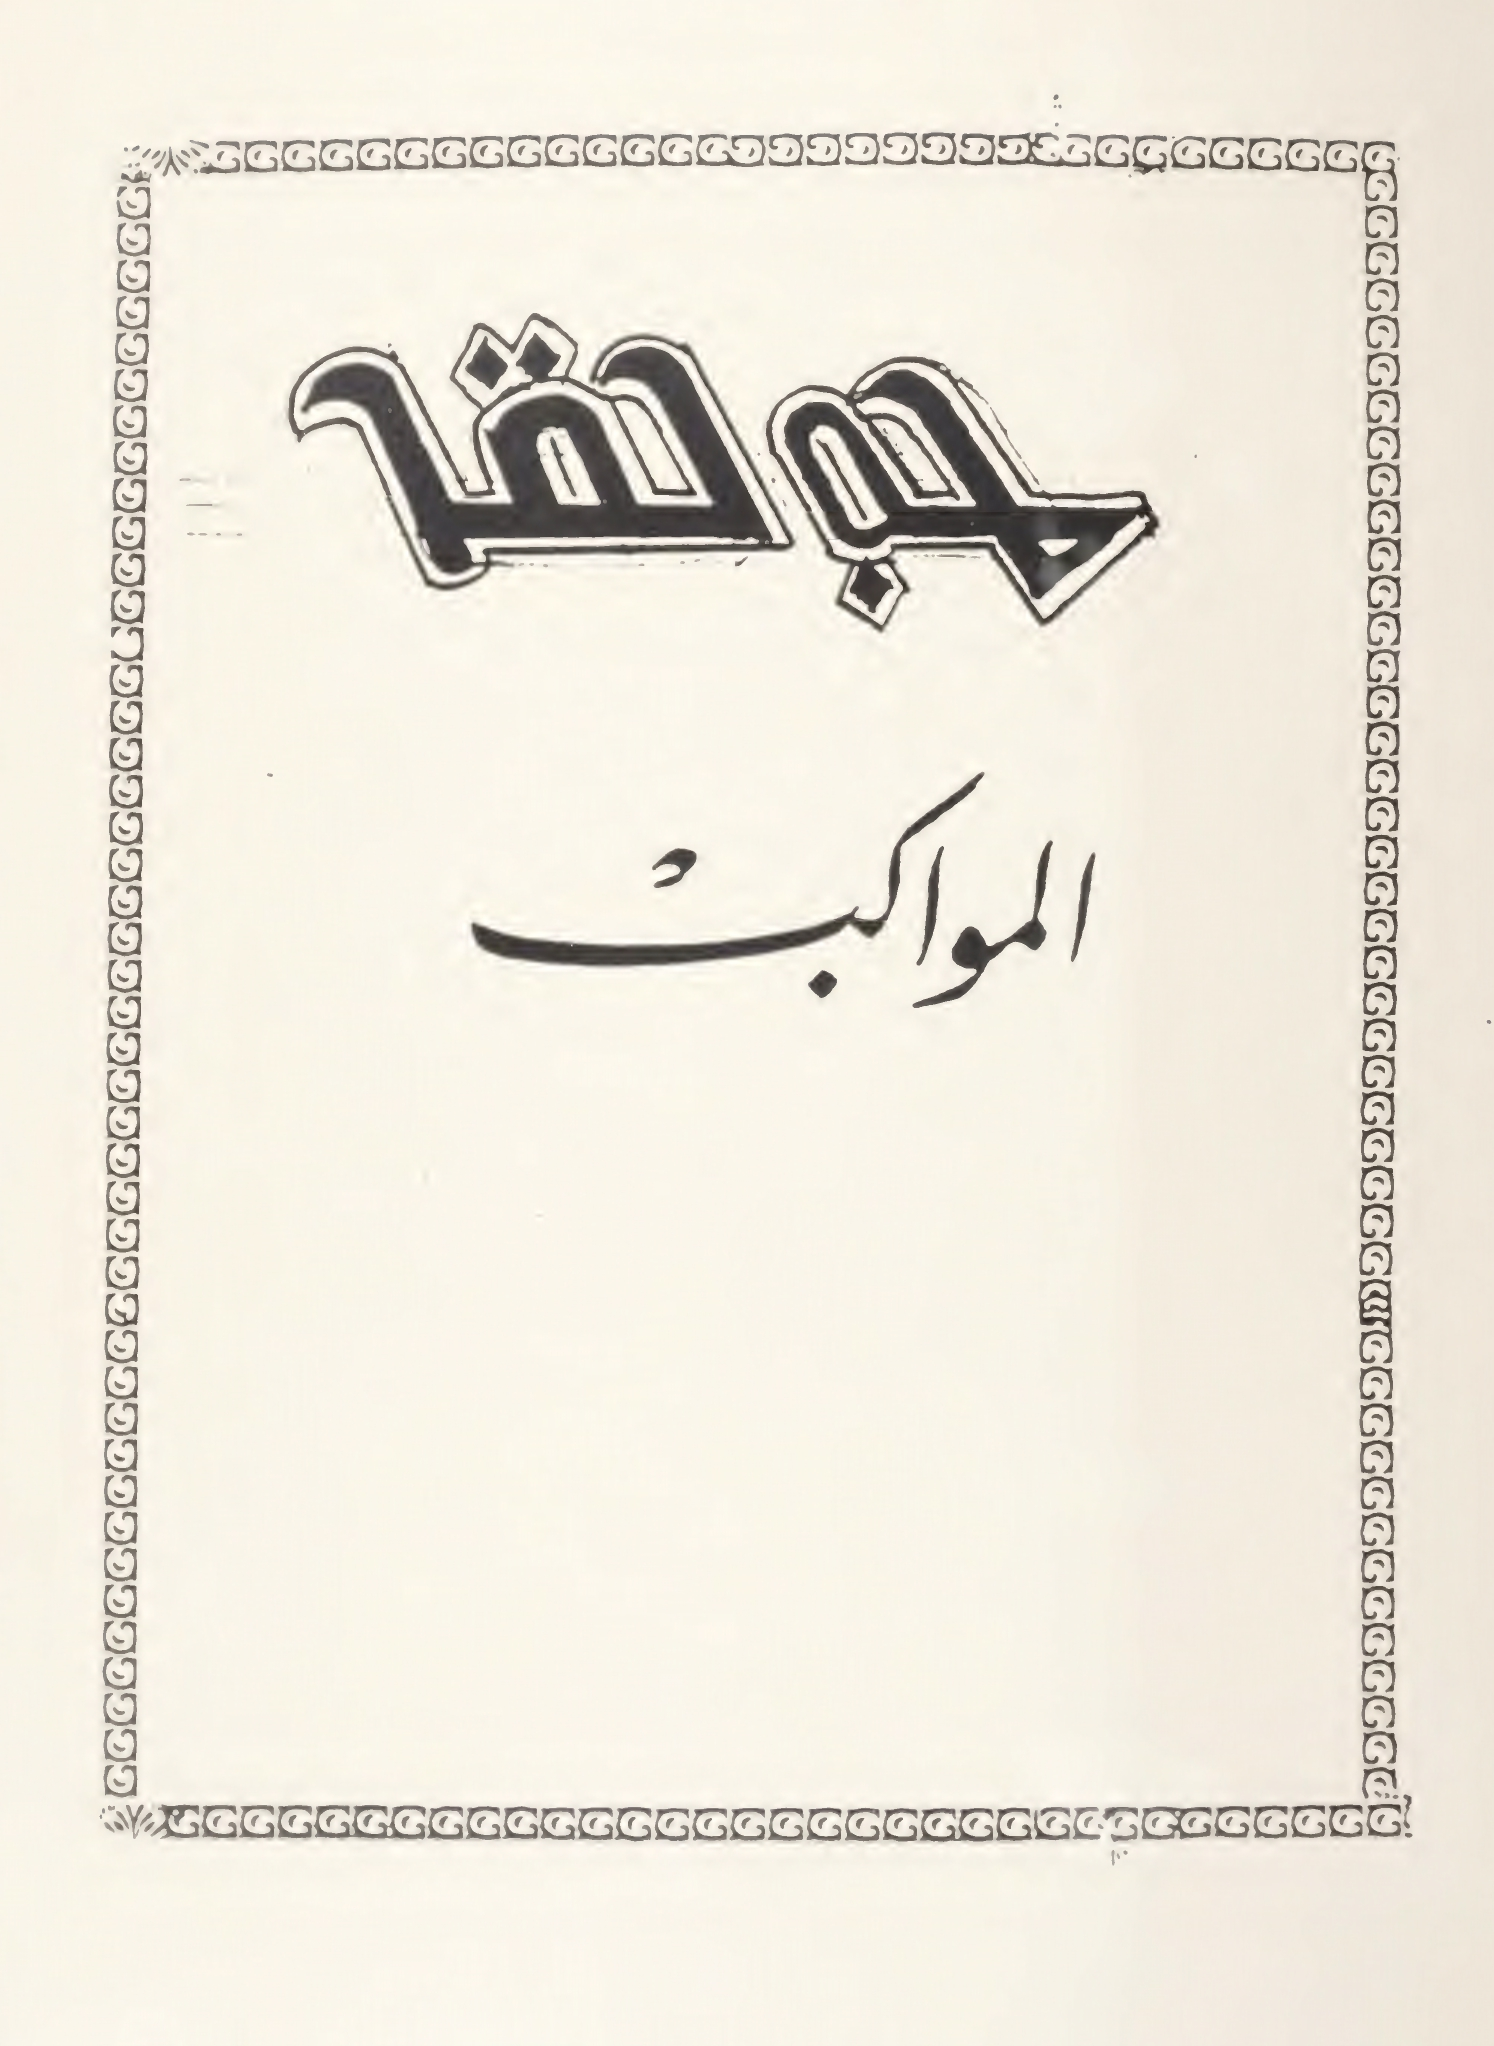 K. Gibran, The Processions (Translation into Syriac), Beth Mardutho: The Syriac Institute, 1978.